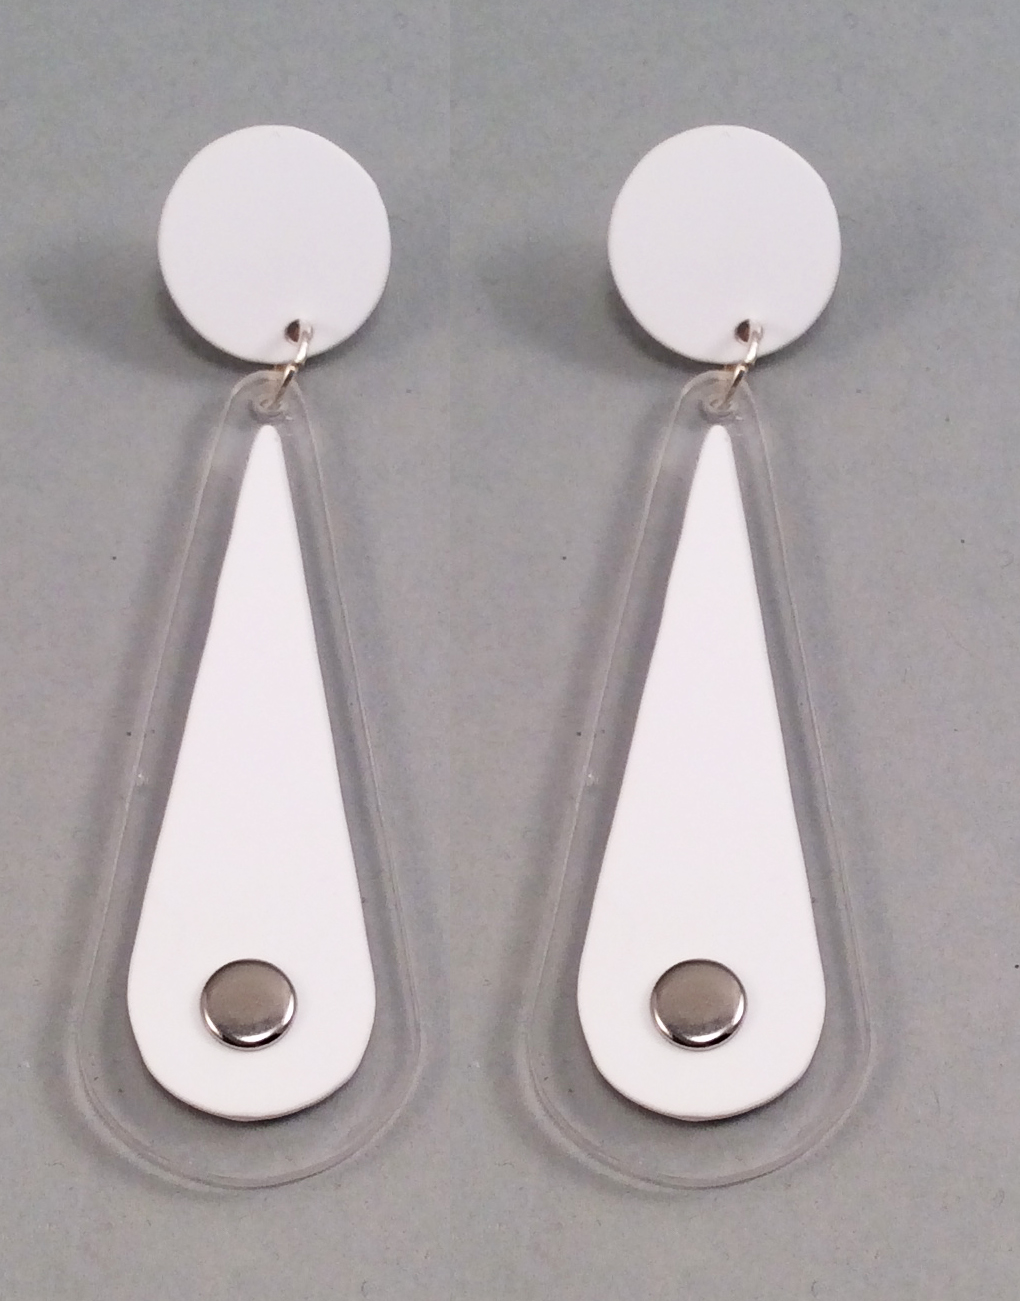 Whitear earrings